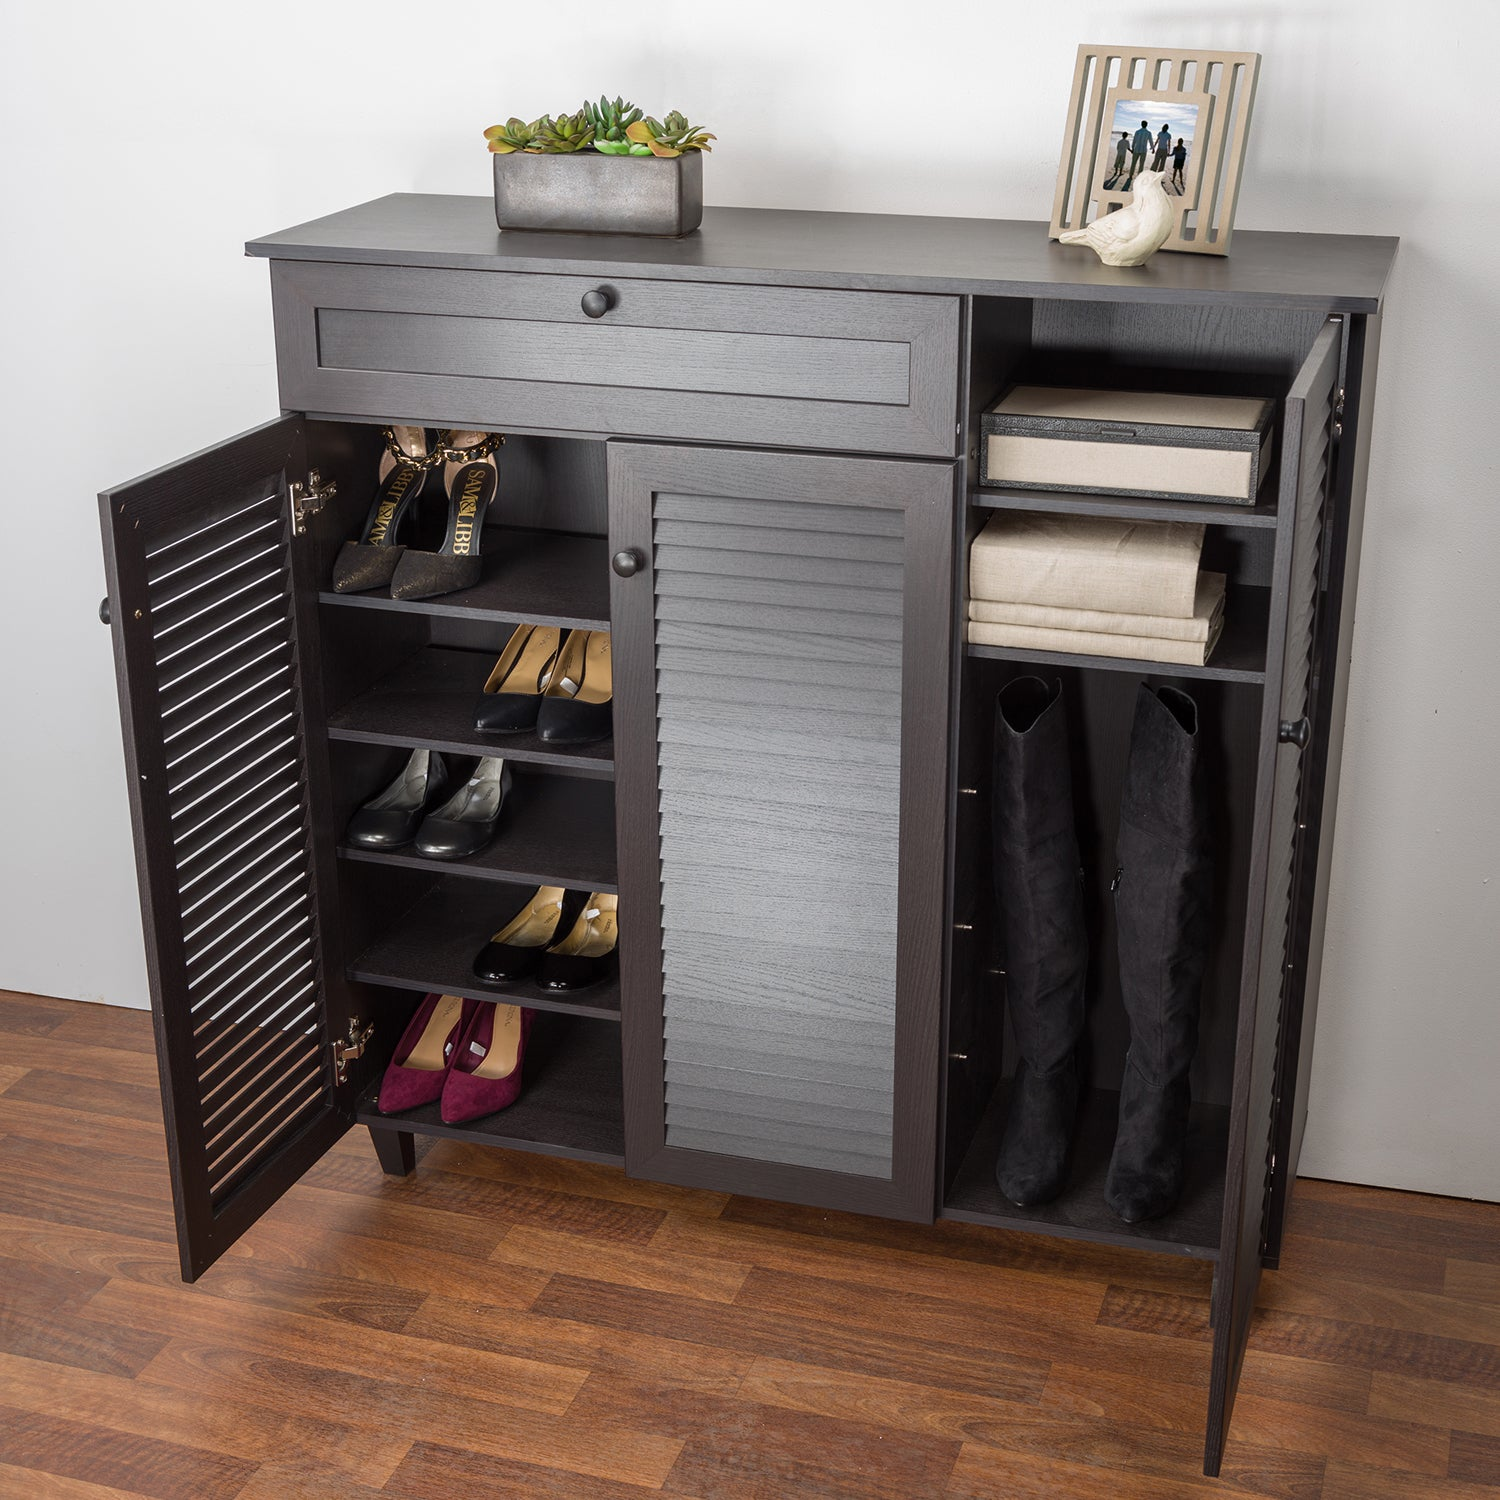 Baxton Studio Pocillo Espresso Finished Wood Shoe Storage Cabinet